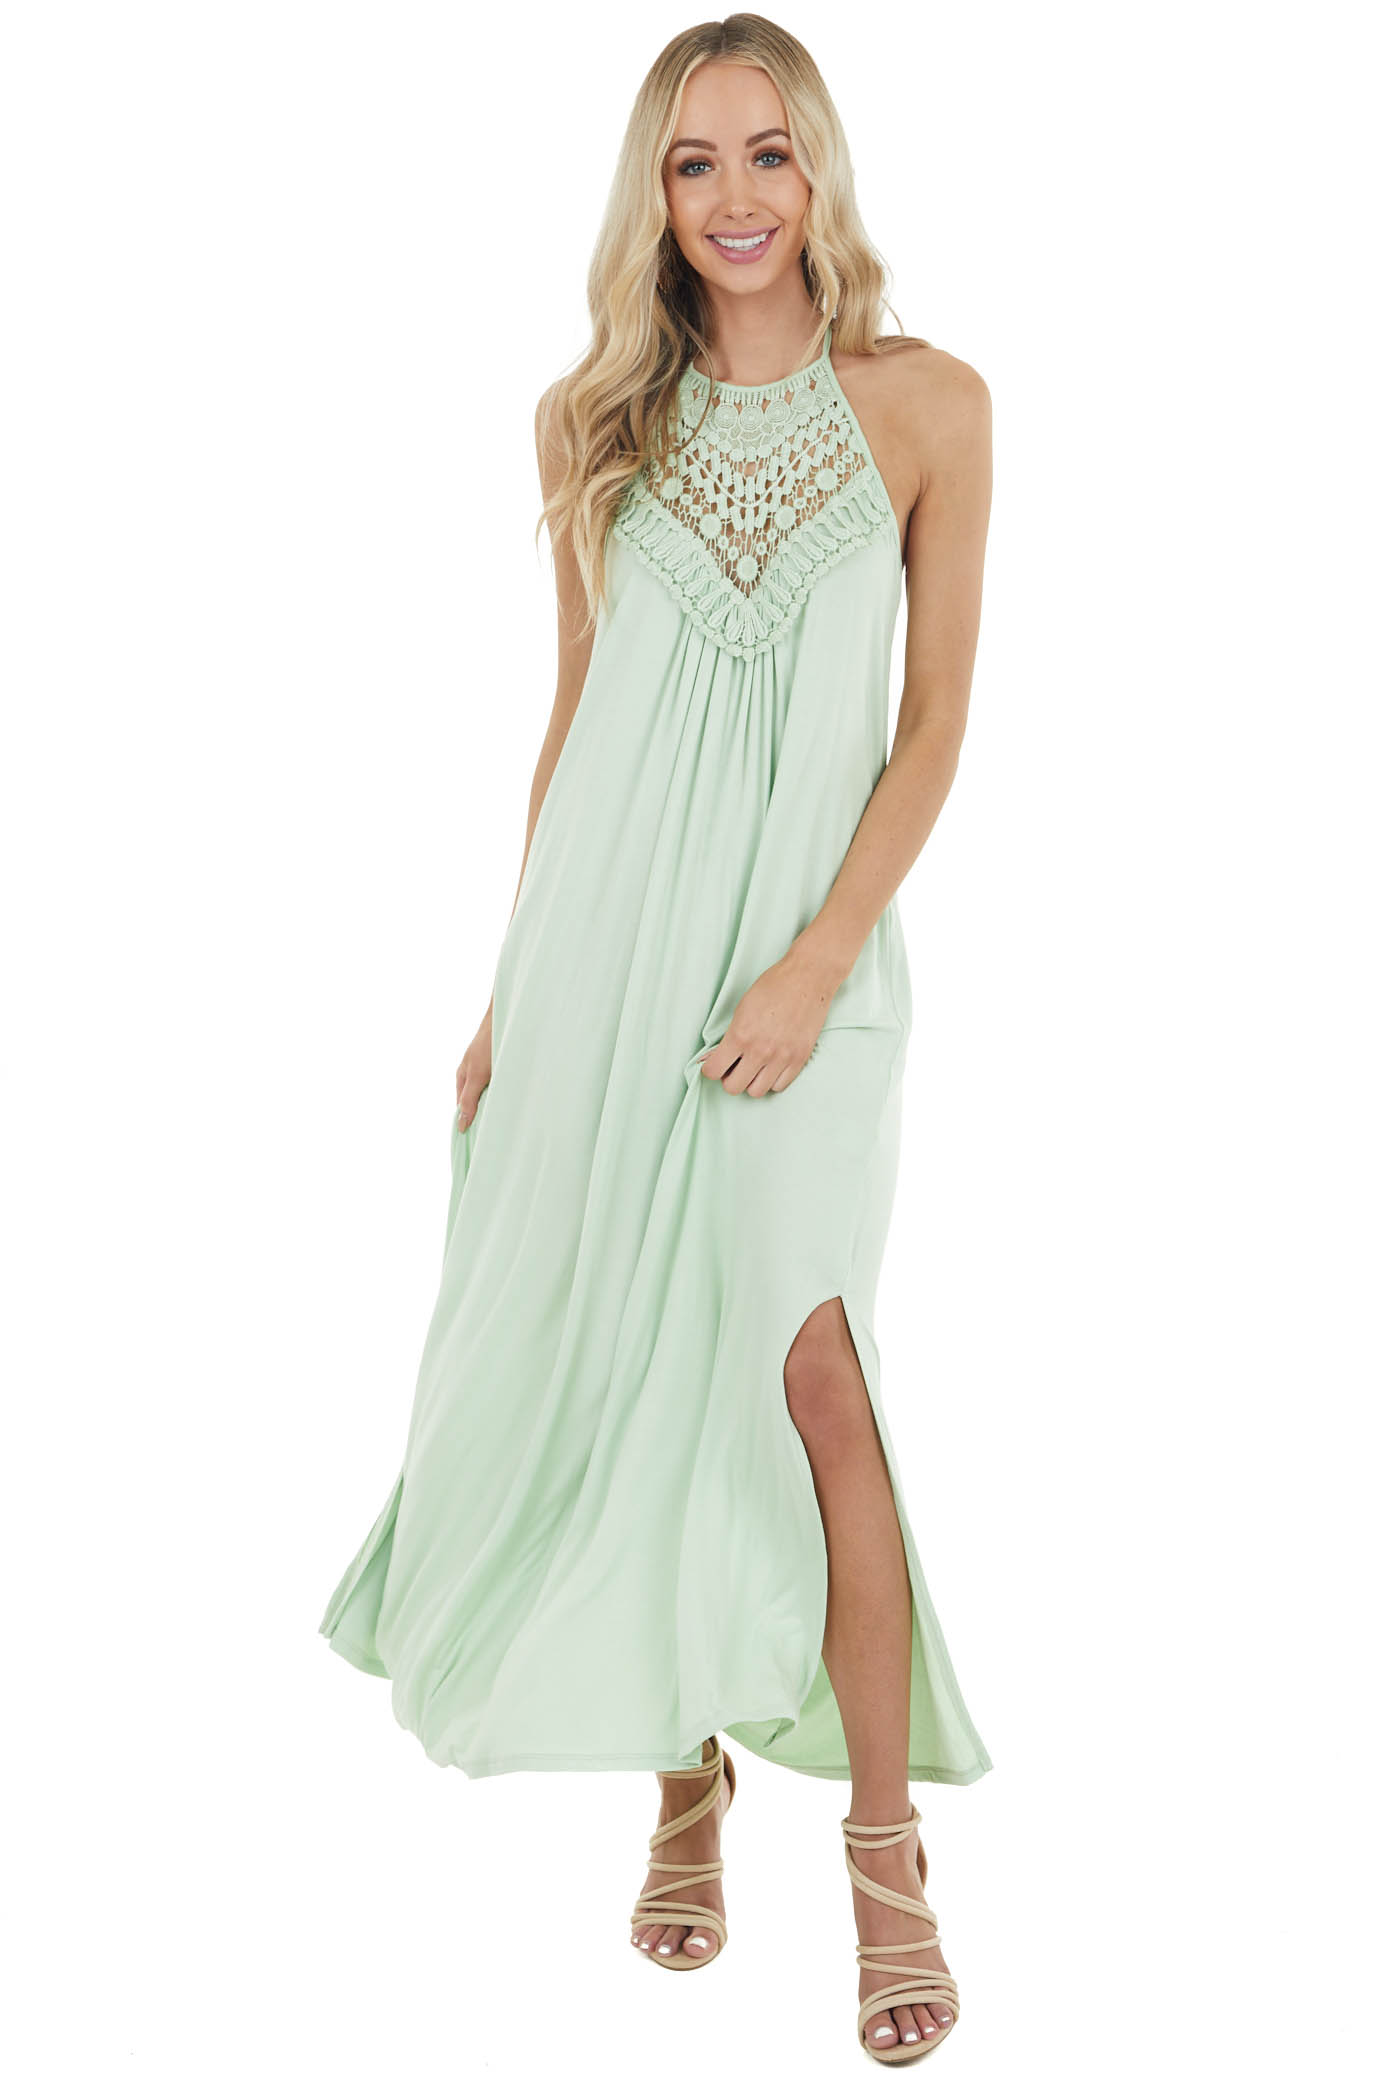 Pale Mint Sleeveless Maxi Dress with Front Lace Detail